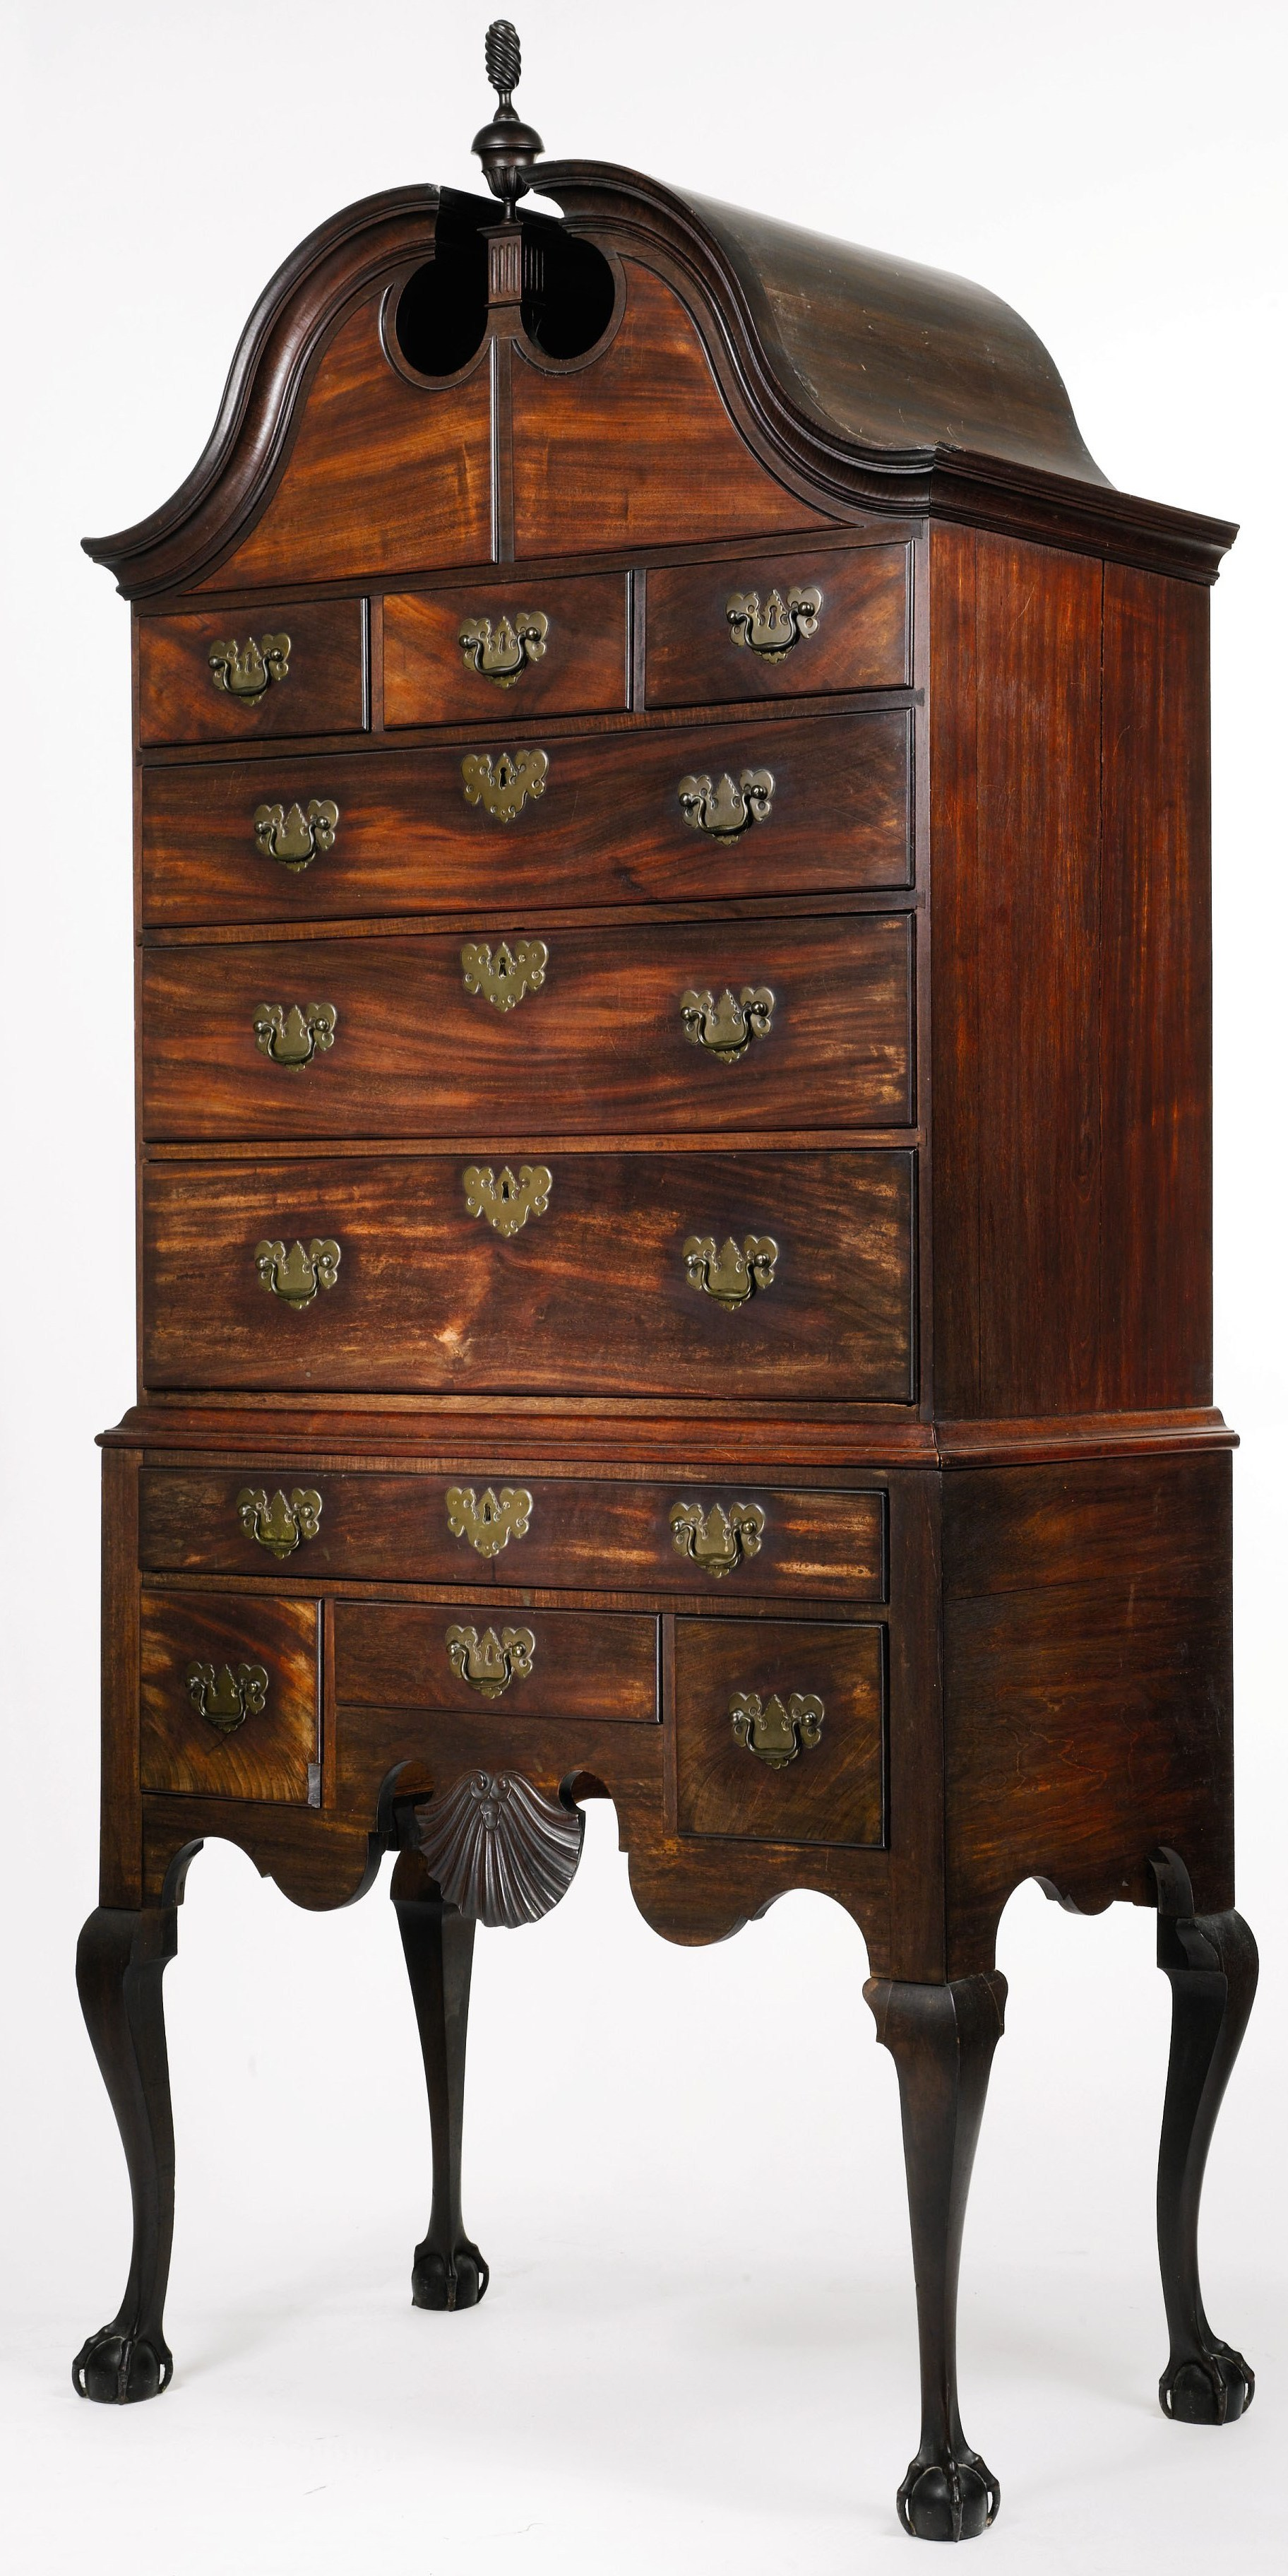 1756 John Townsend highboy